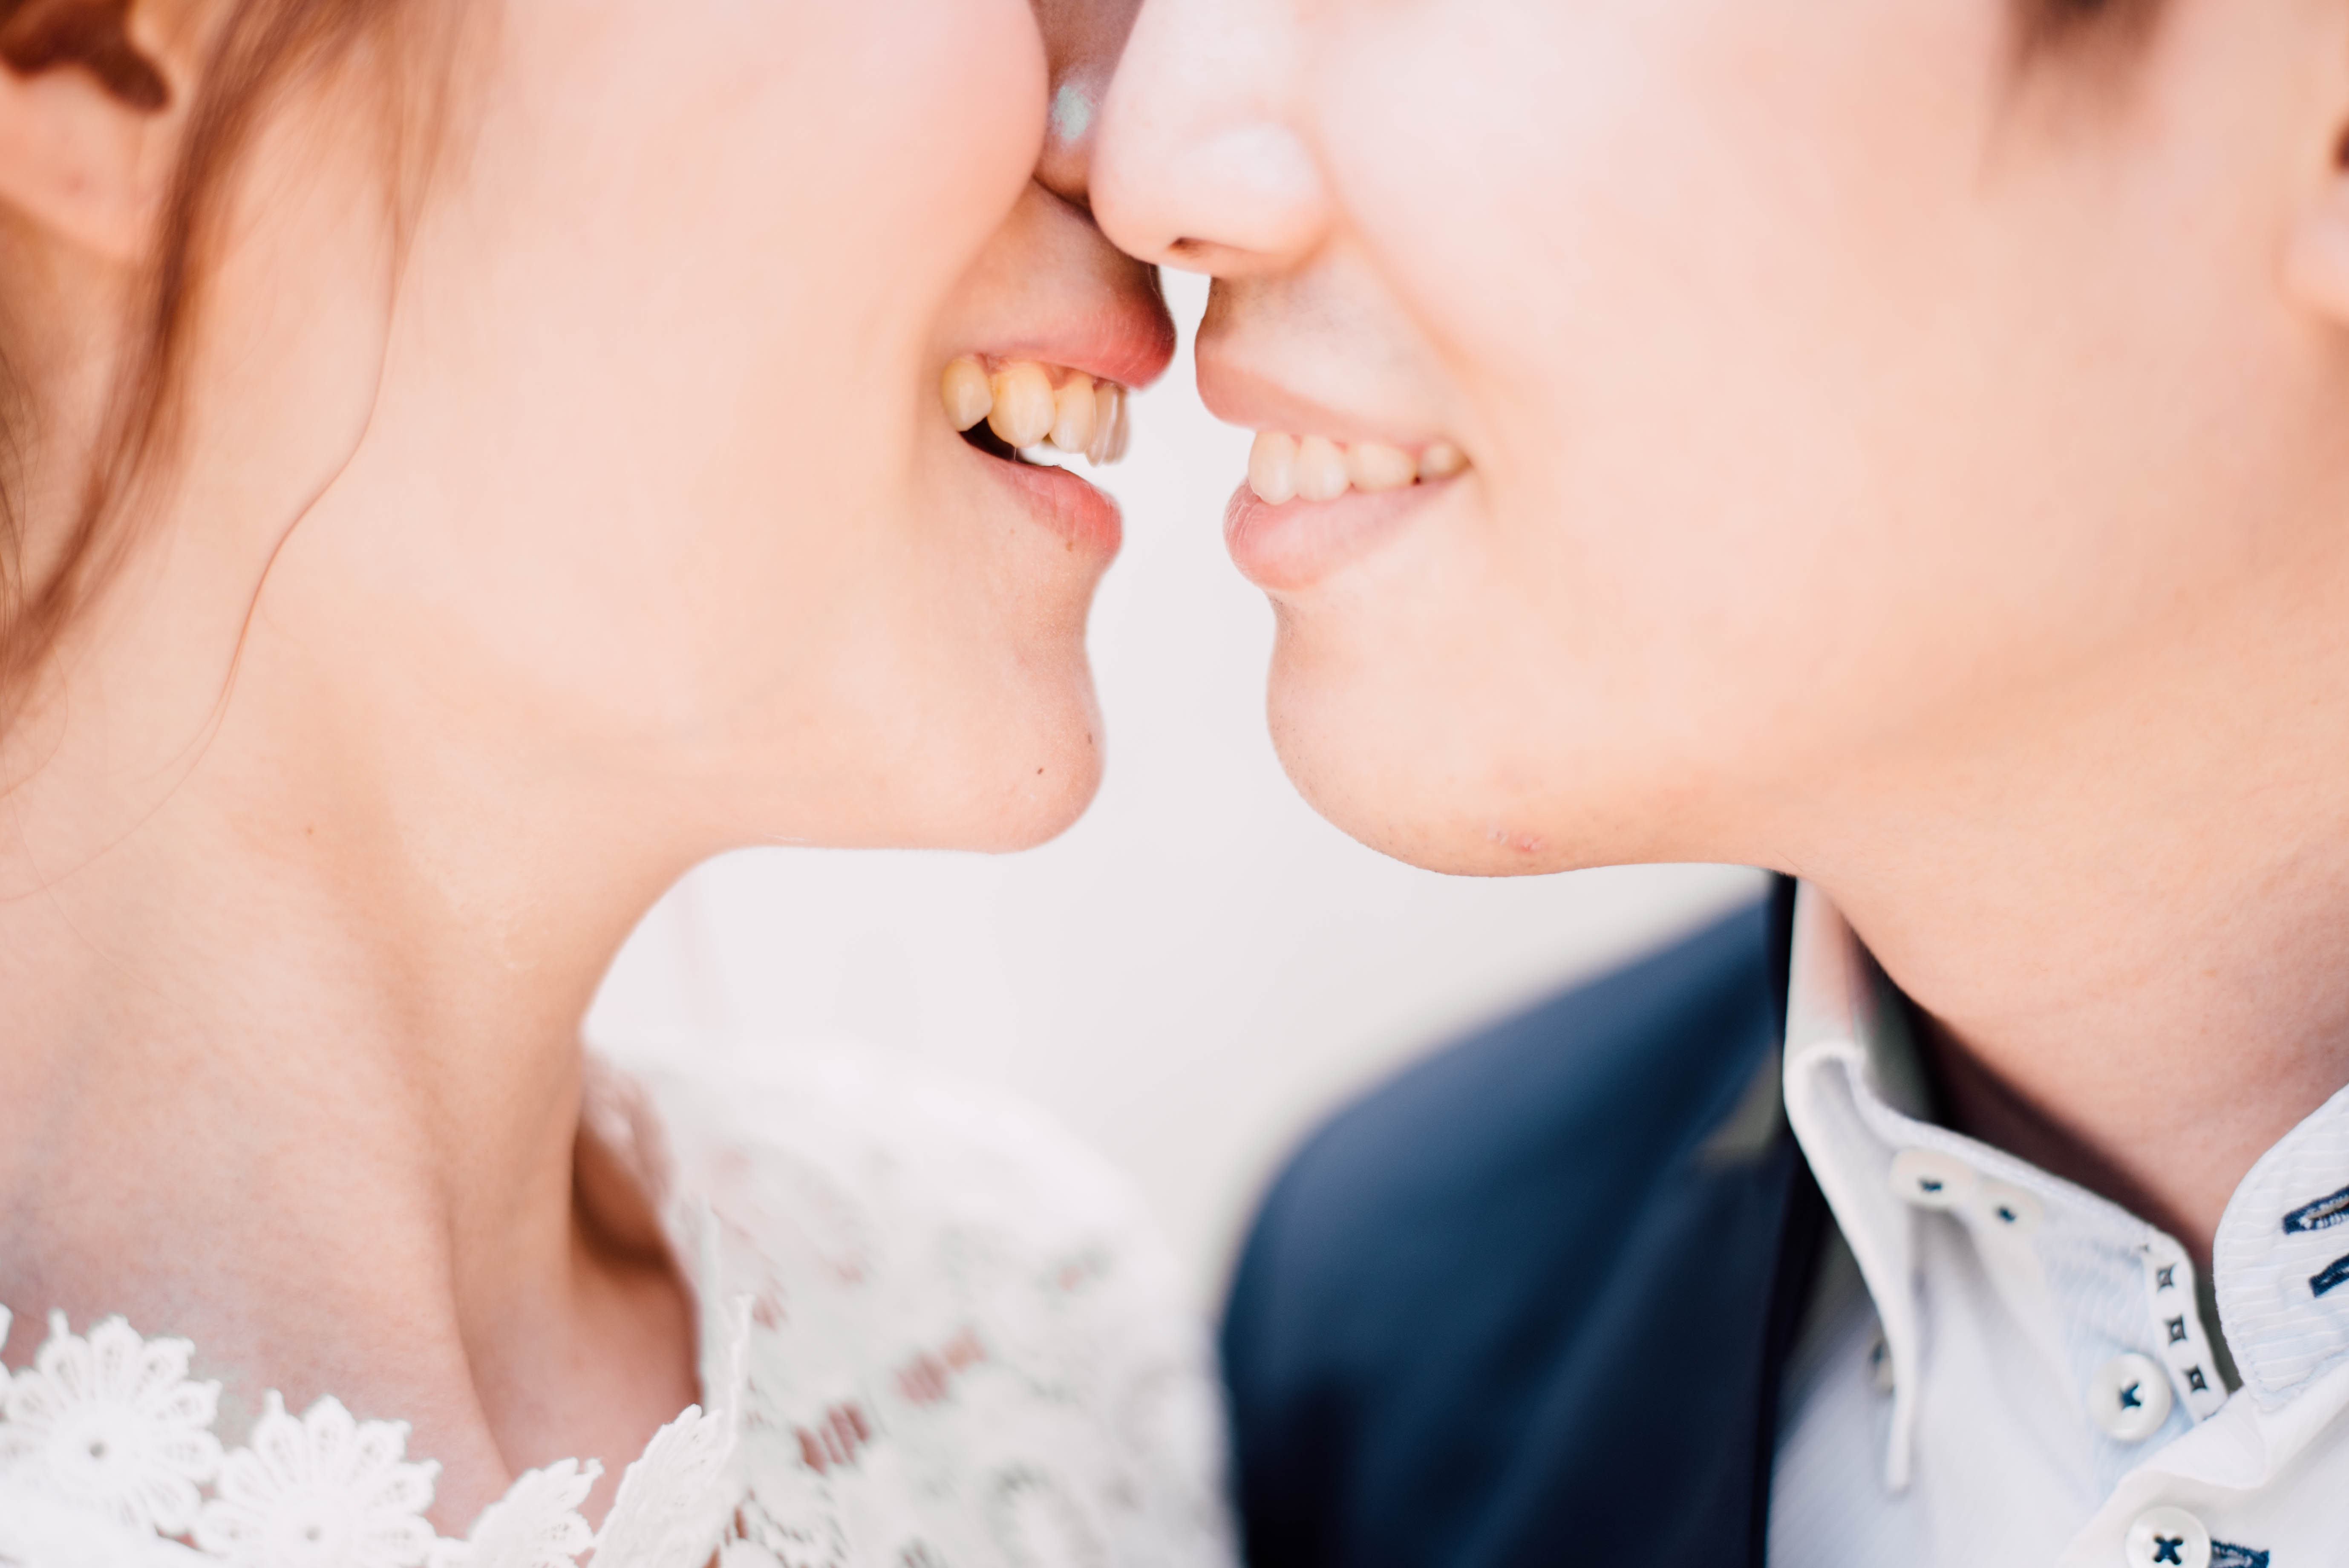 A male and female smiling while embracing for a kiss.